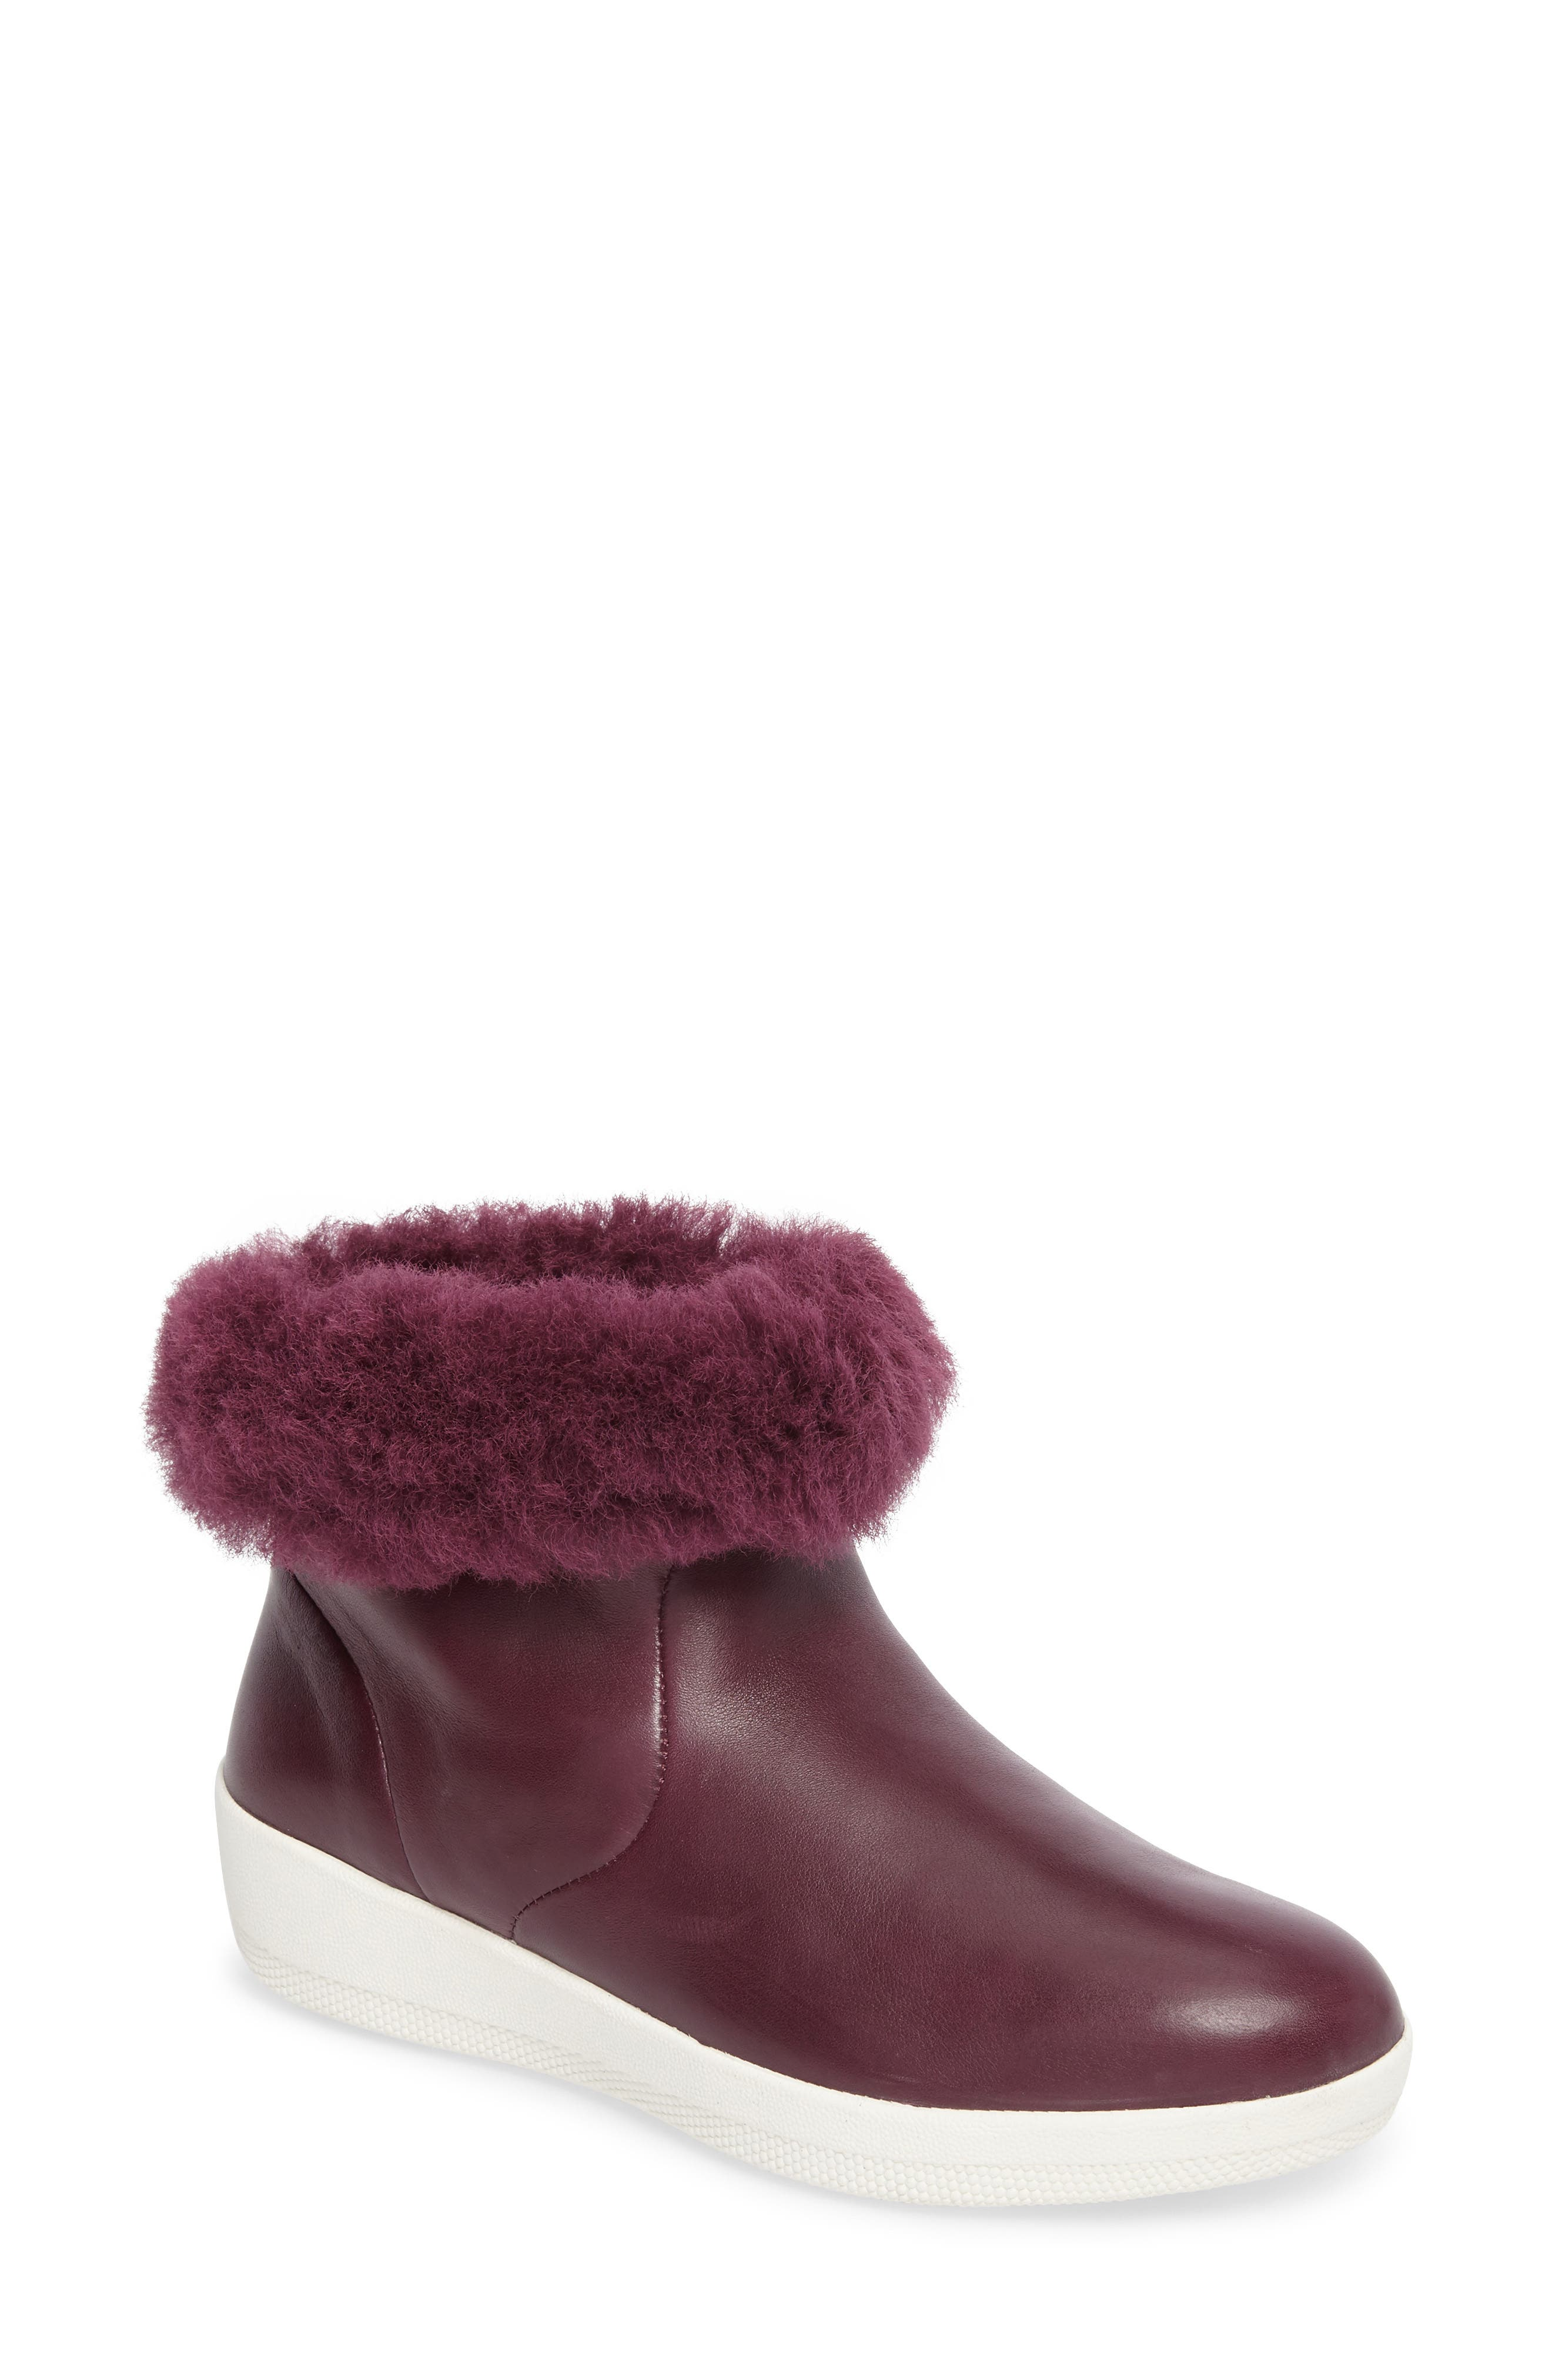 Skatebootie<sup>™</sup> with Genuine Shearling Cuff,                             Main thumbnail 2, color,